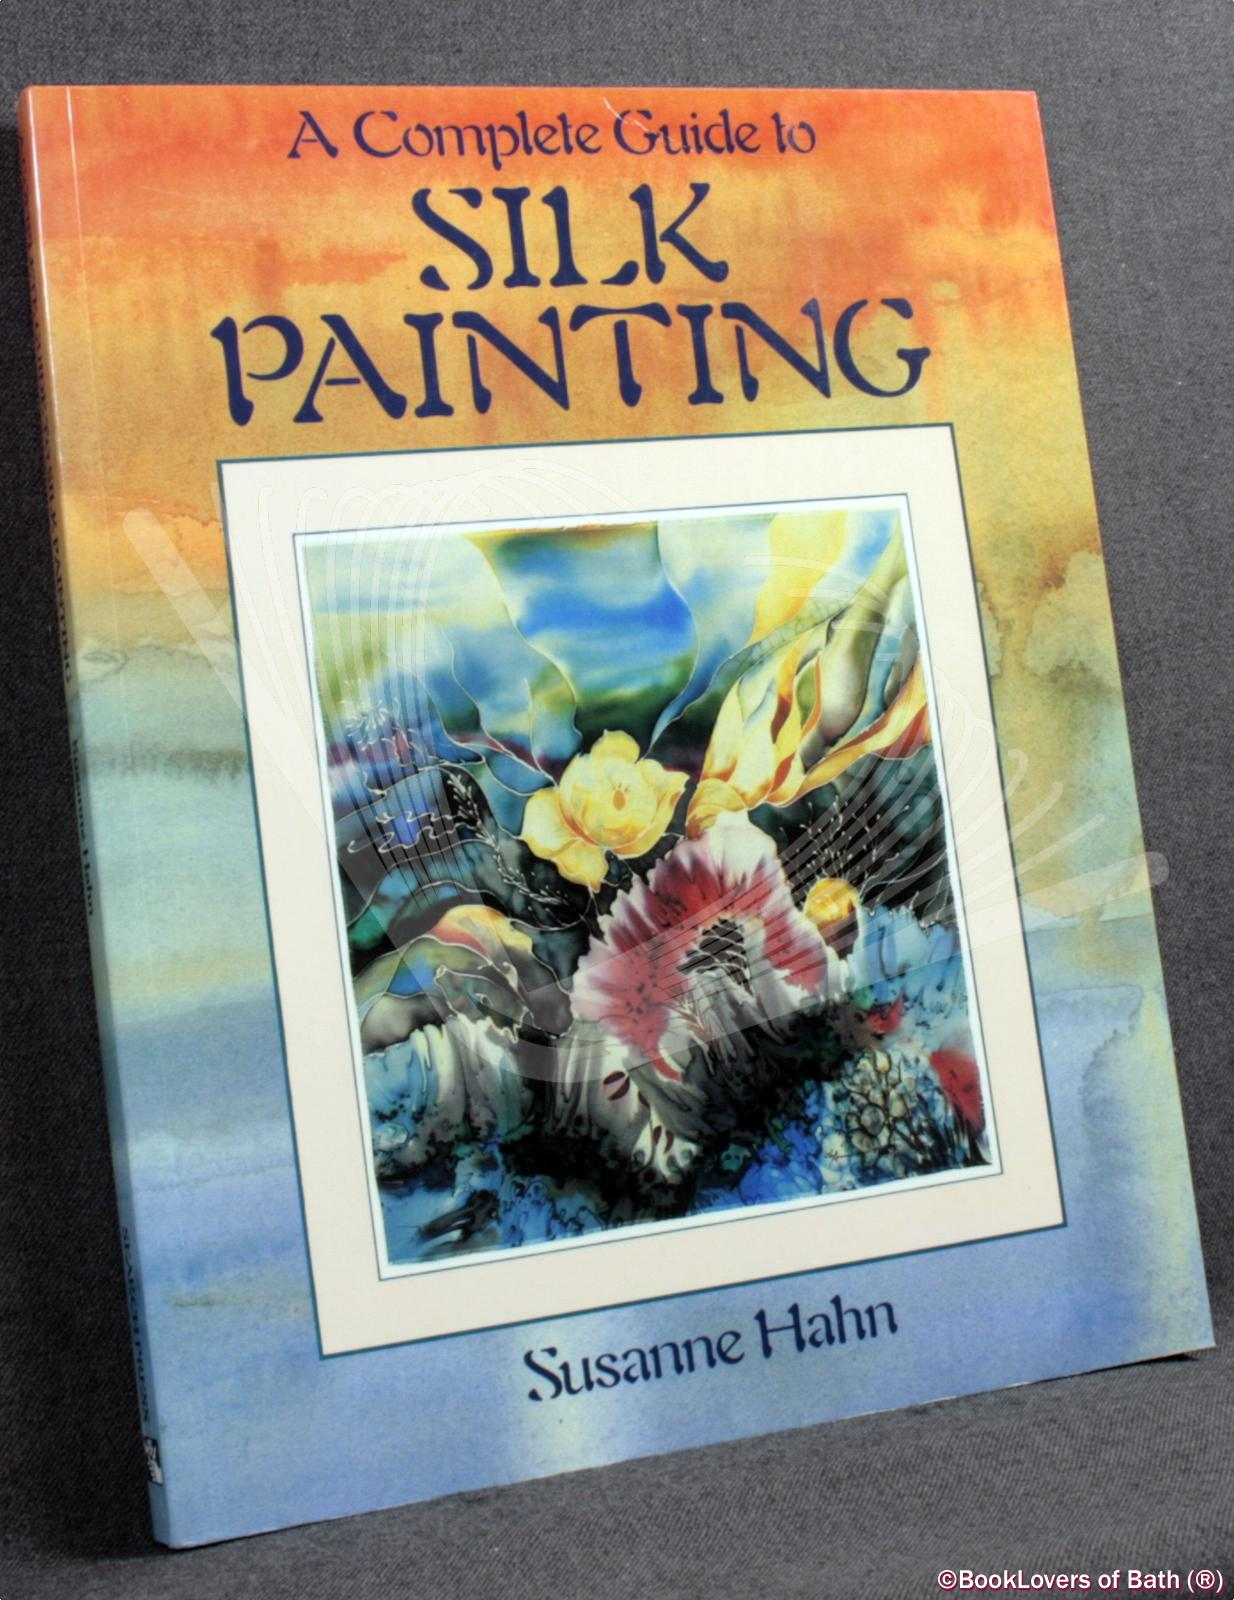 A Complete Guide to Silk Painting - Susanne Hahn